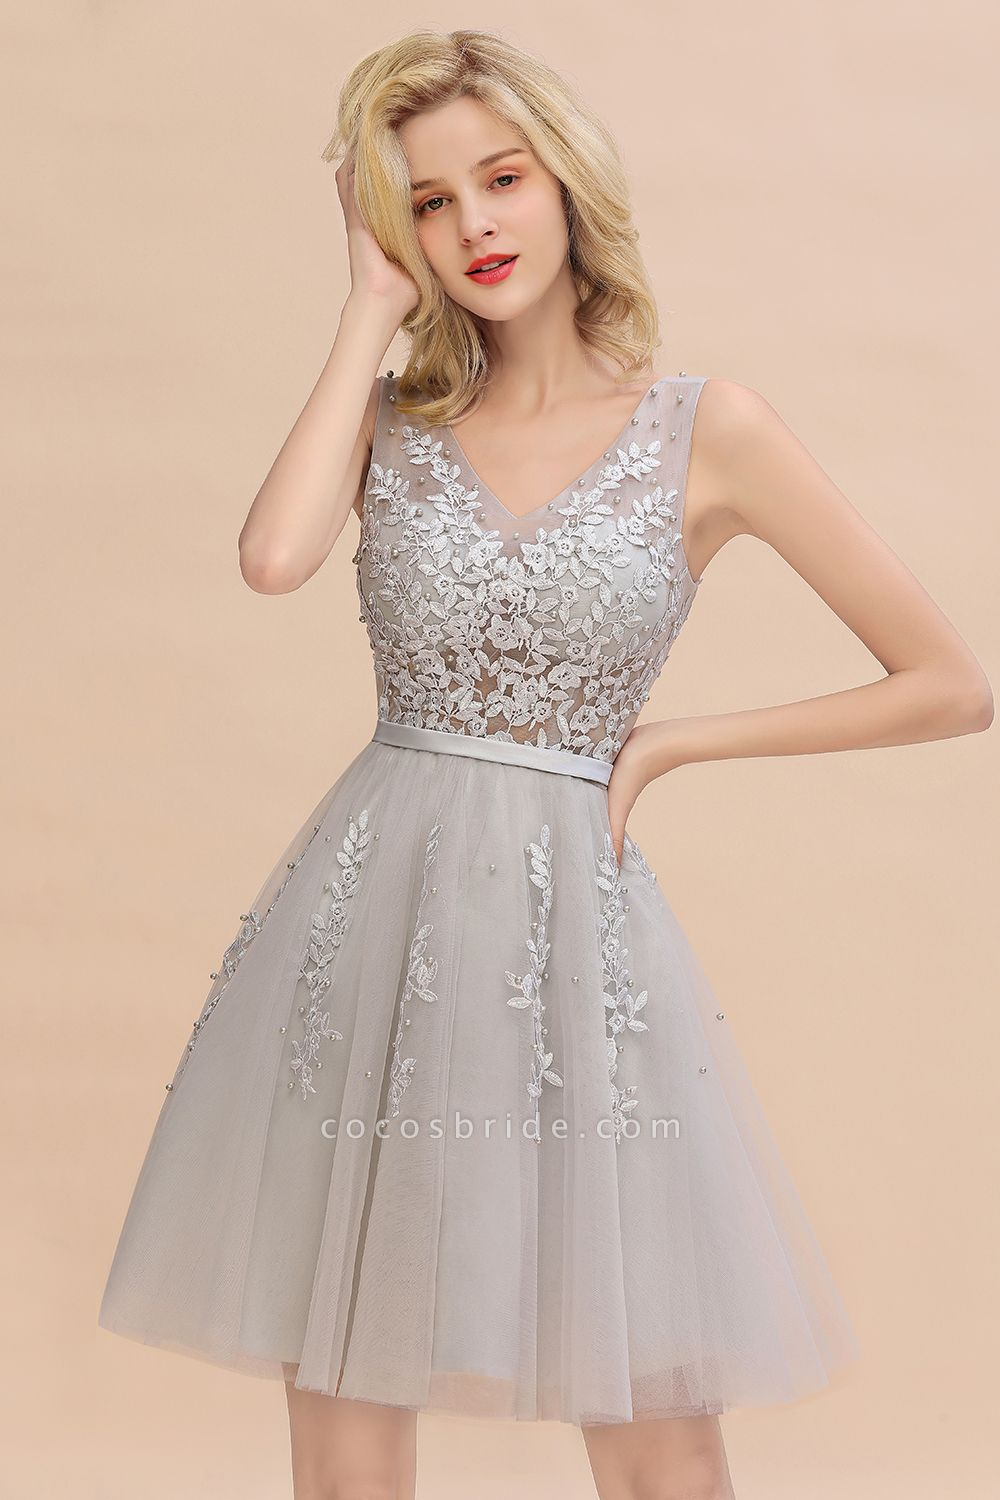 Sexy V-neck Lace-up Short Homecoming Dress with Lace Appliques